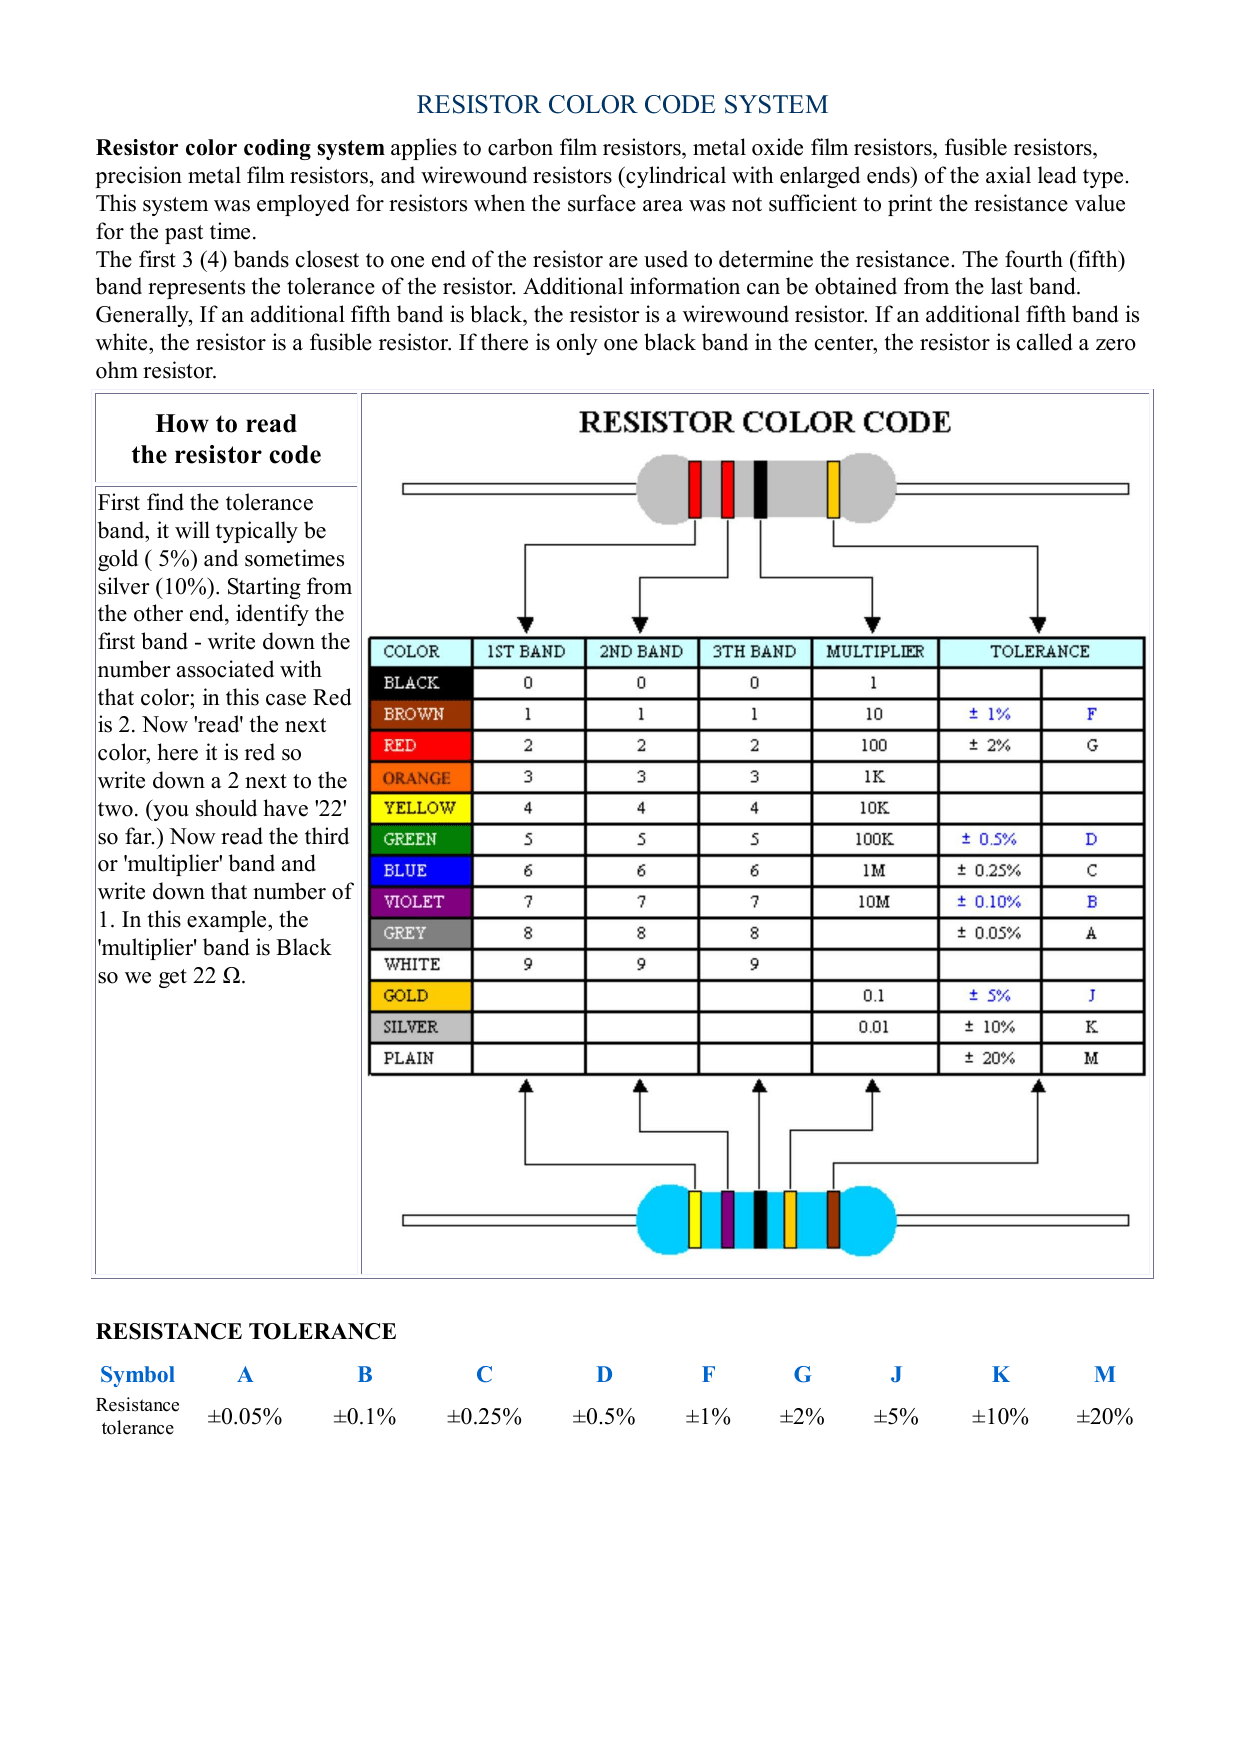 Resistor Color Code System How To Read The